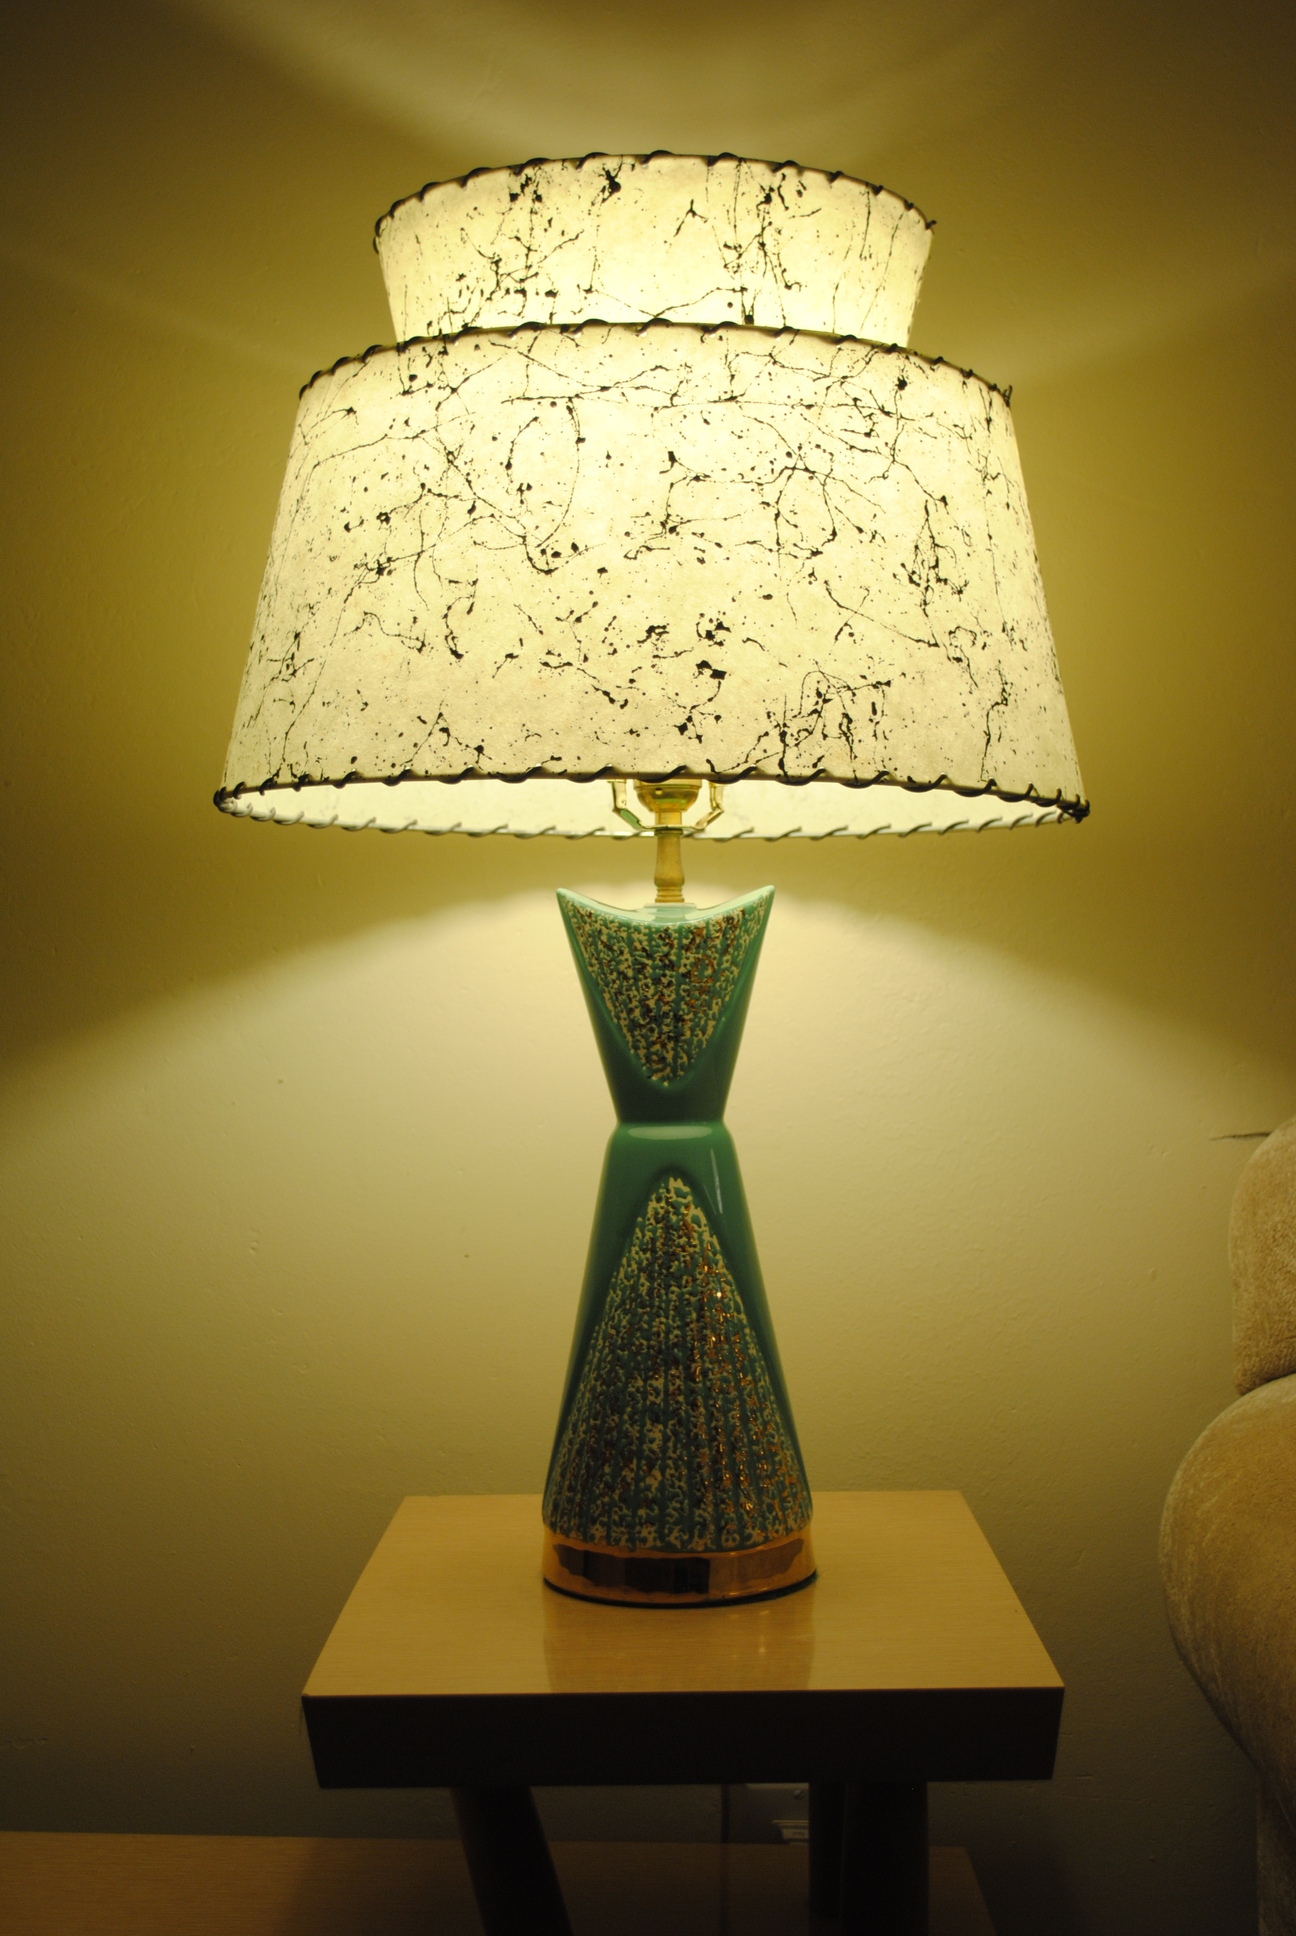 366 Vintage Table Lamps From Readers Homes Retro Renovation